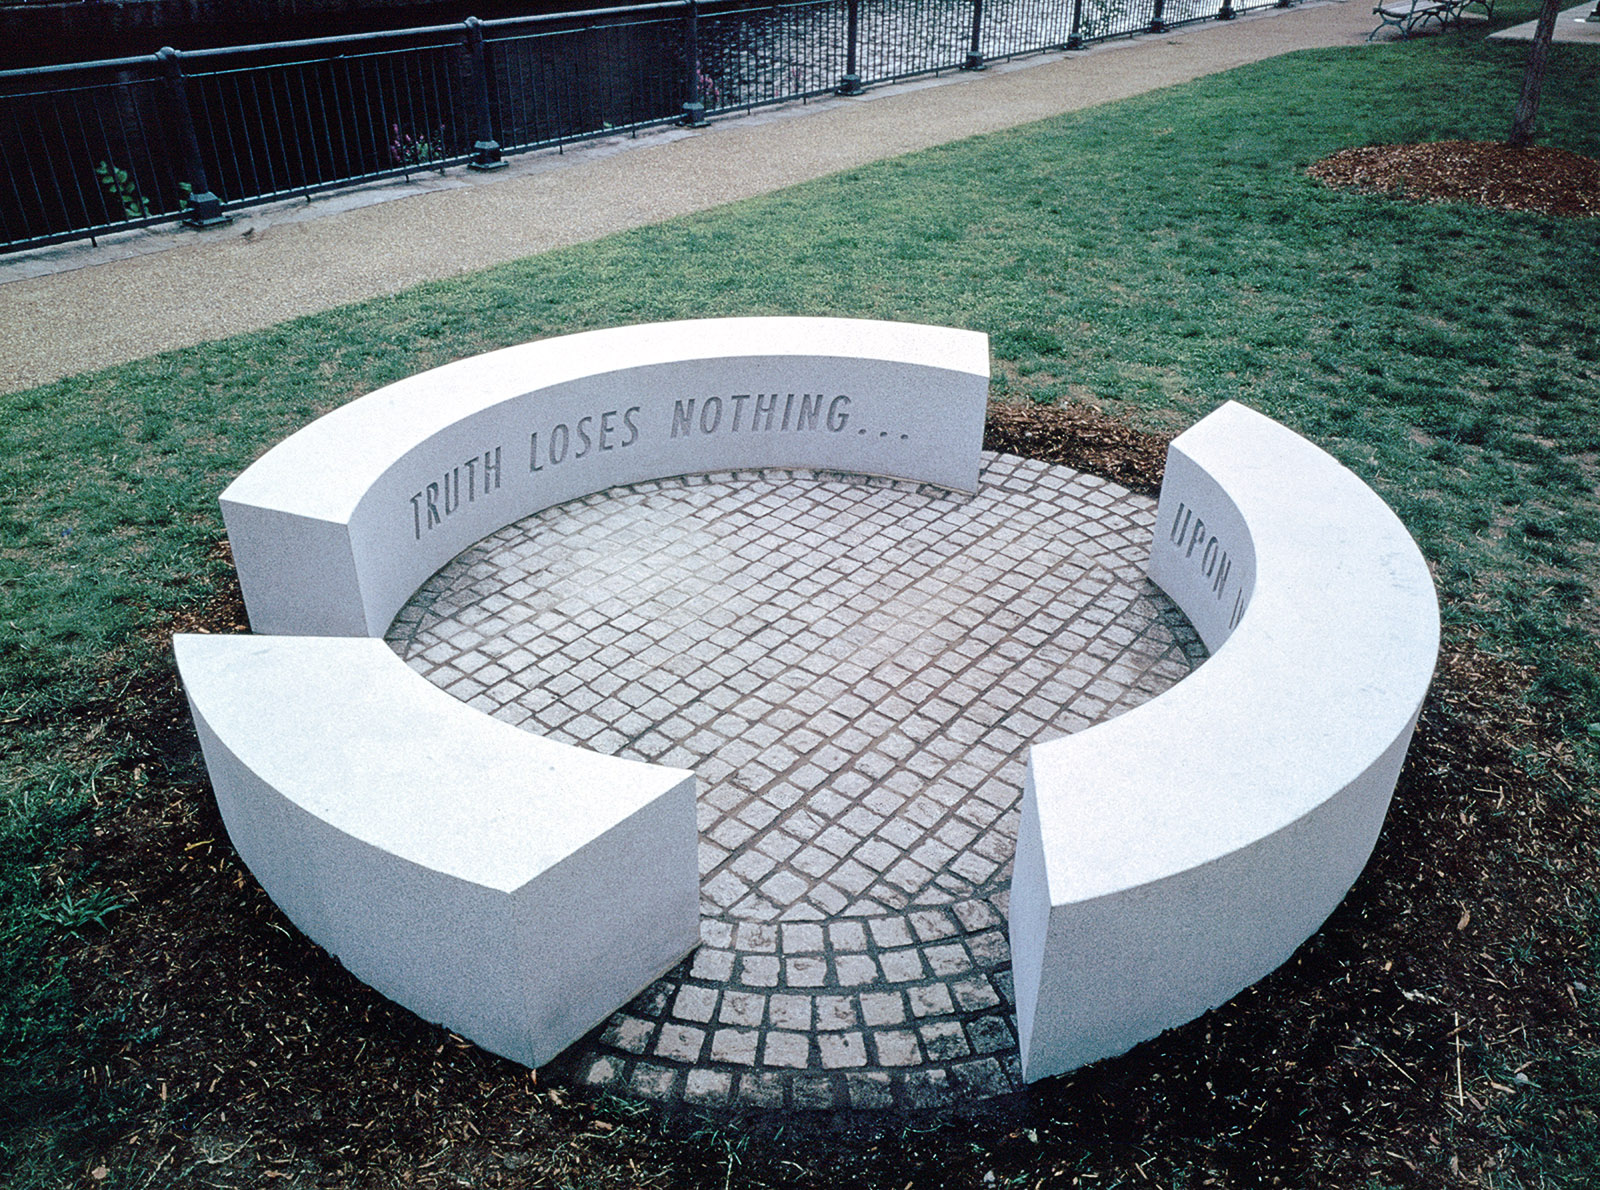 Seating Circle Truth Loses Nothing Upon Investigation, installation view 1997, Photo: B.T. Martin